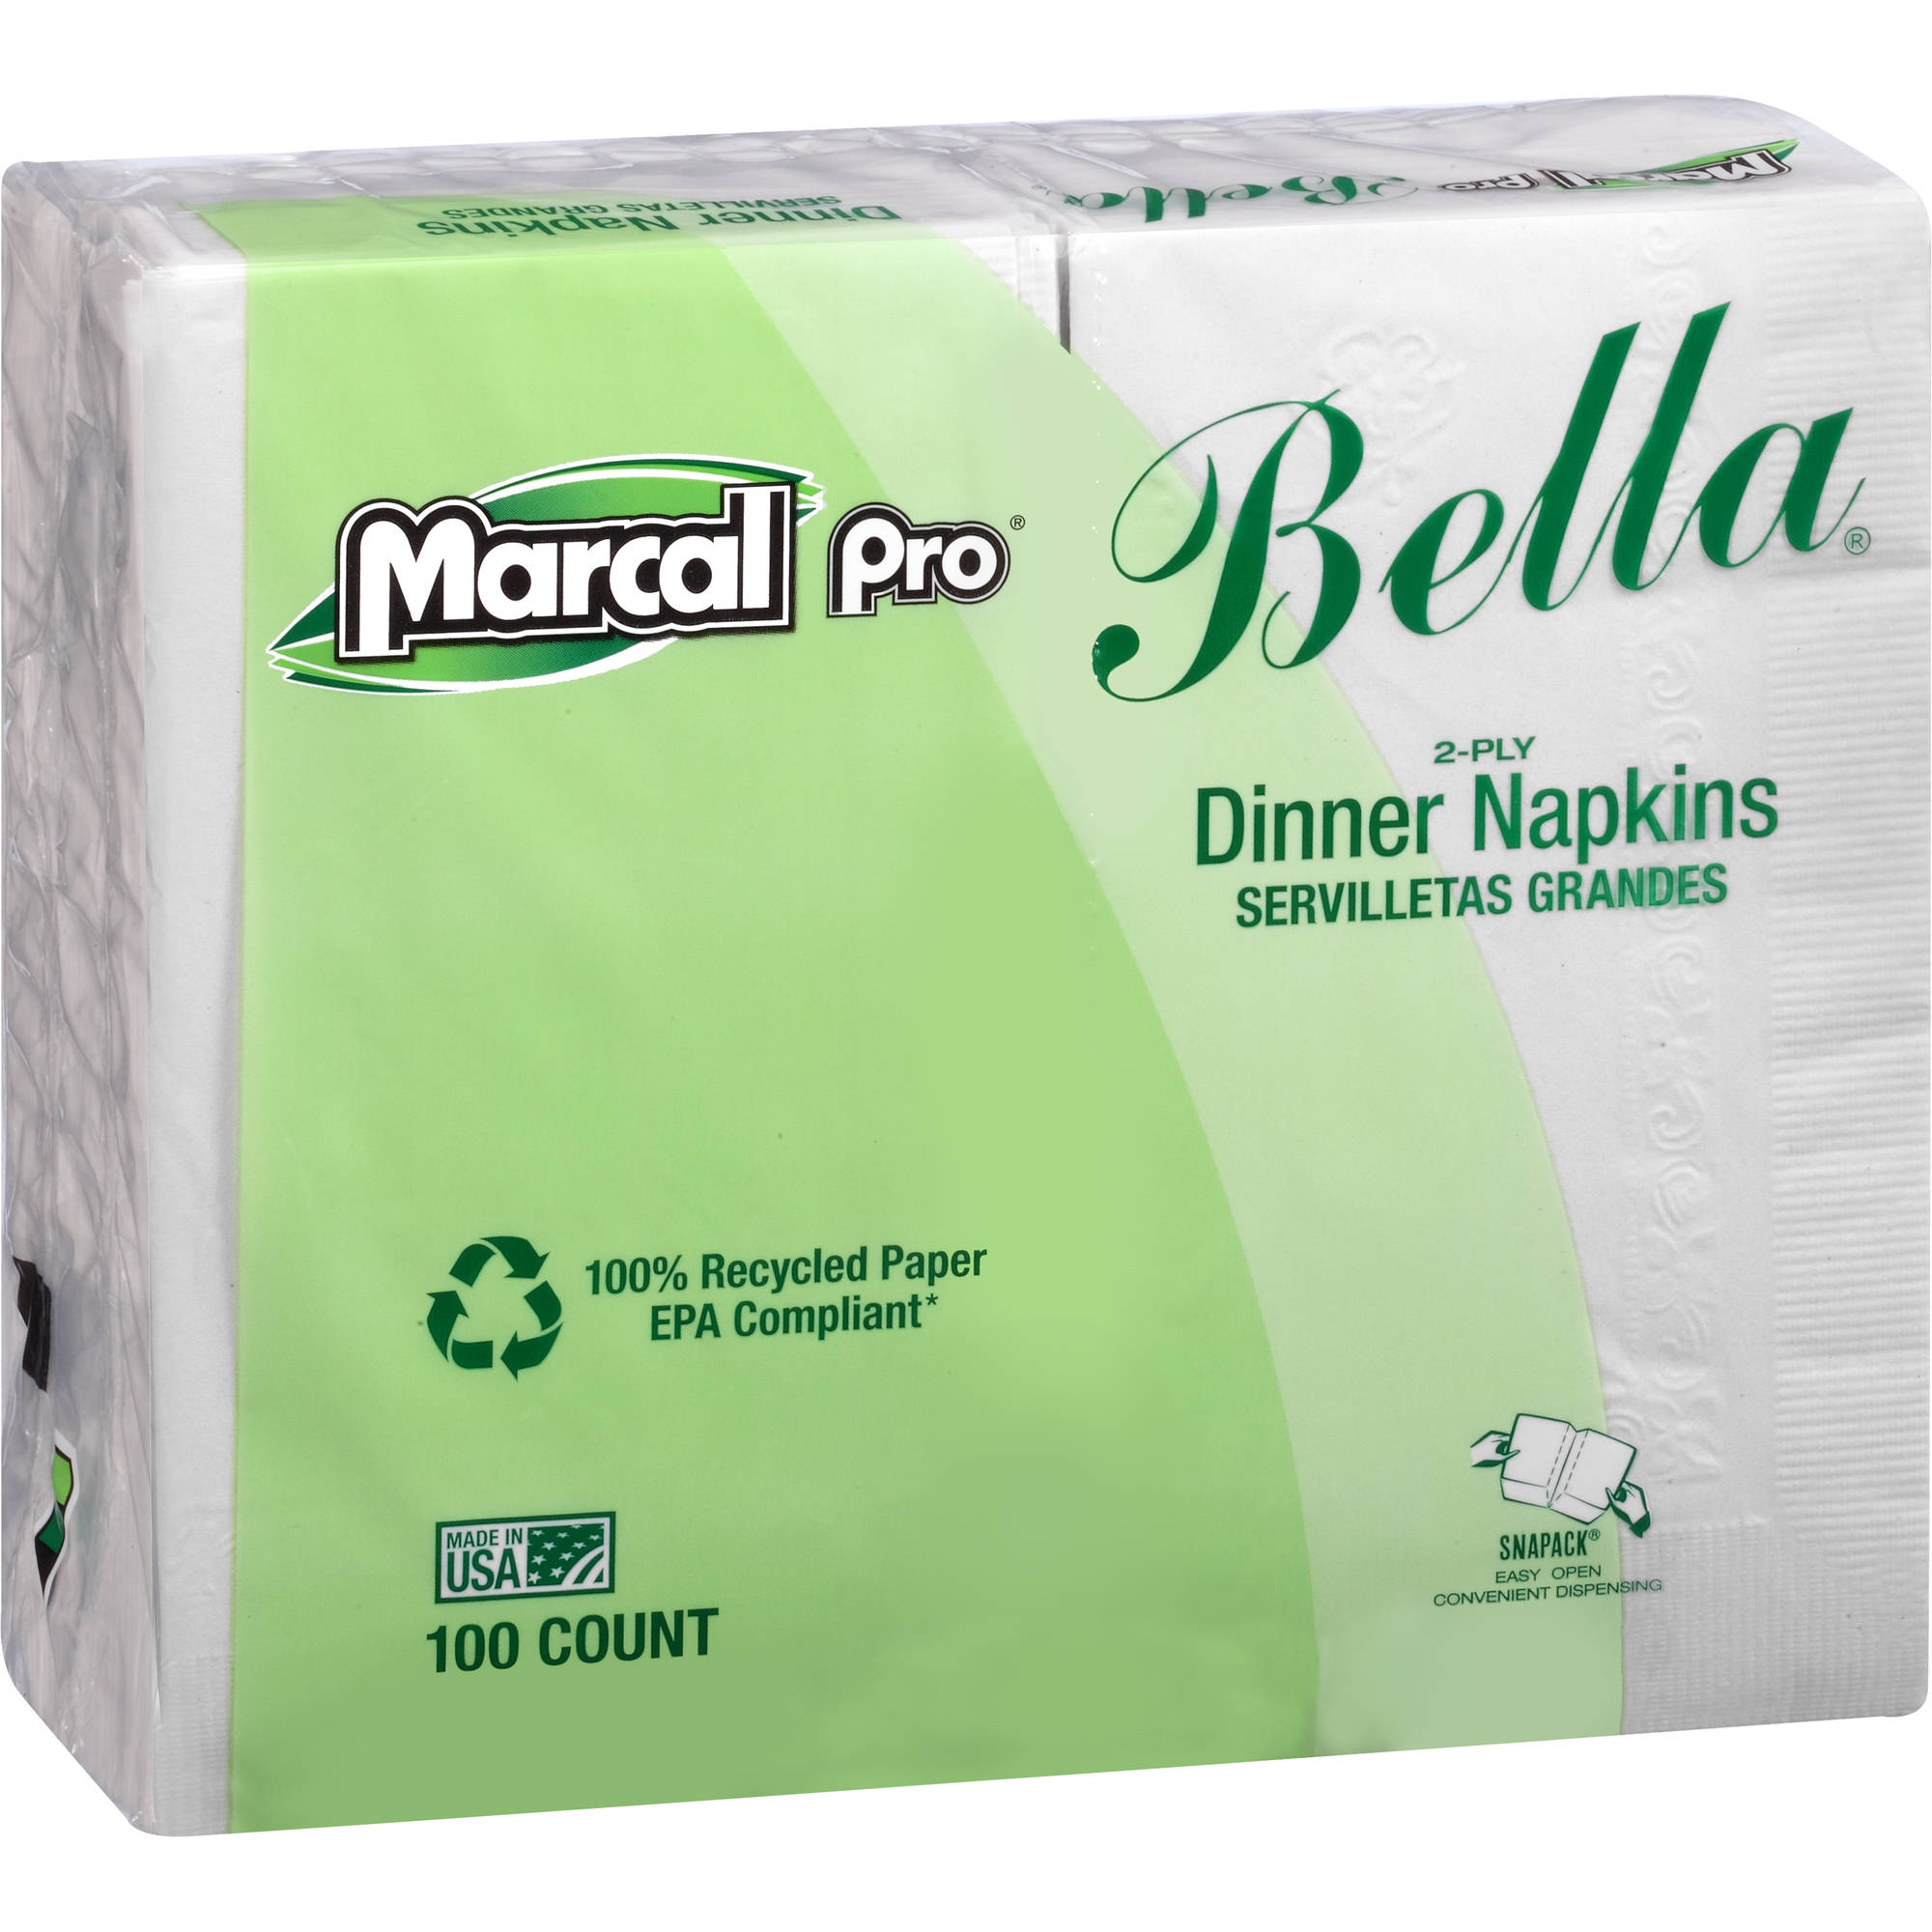 Marcal Eminence Bella 2-Ply Dinner Napkins, 30 Packs of 100, 3000 Total